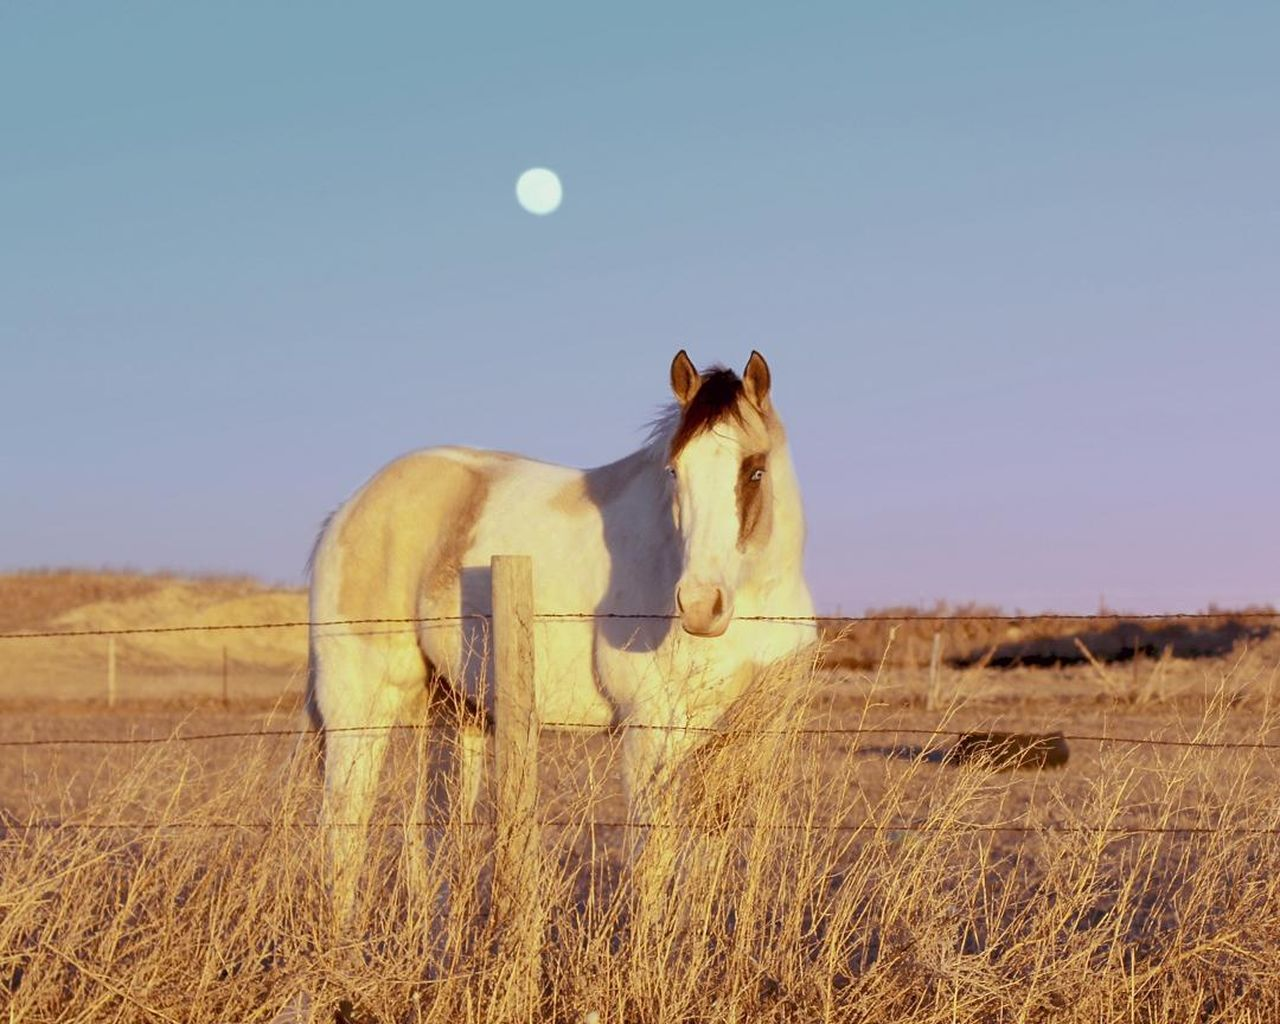 animal themes, moon, clear sky, one animal, mammal, grass, nature, field, landscape, outdoors, animals in the wild, sky, no people, day, standing, beauty in nature, domestic animals